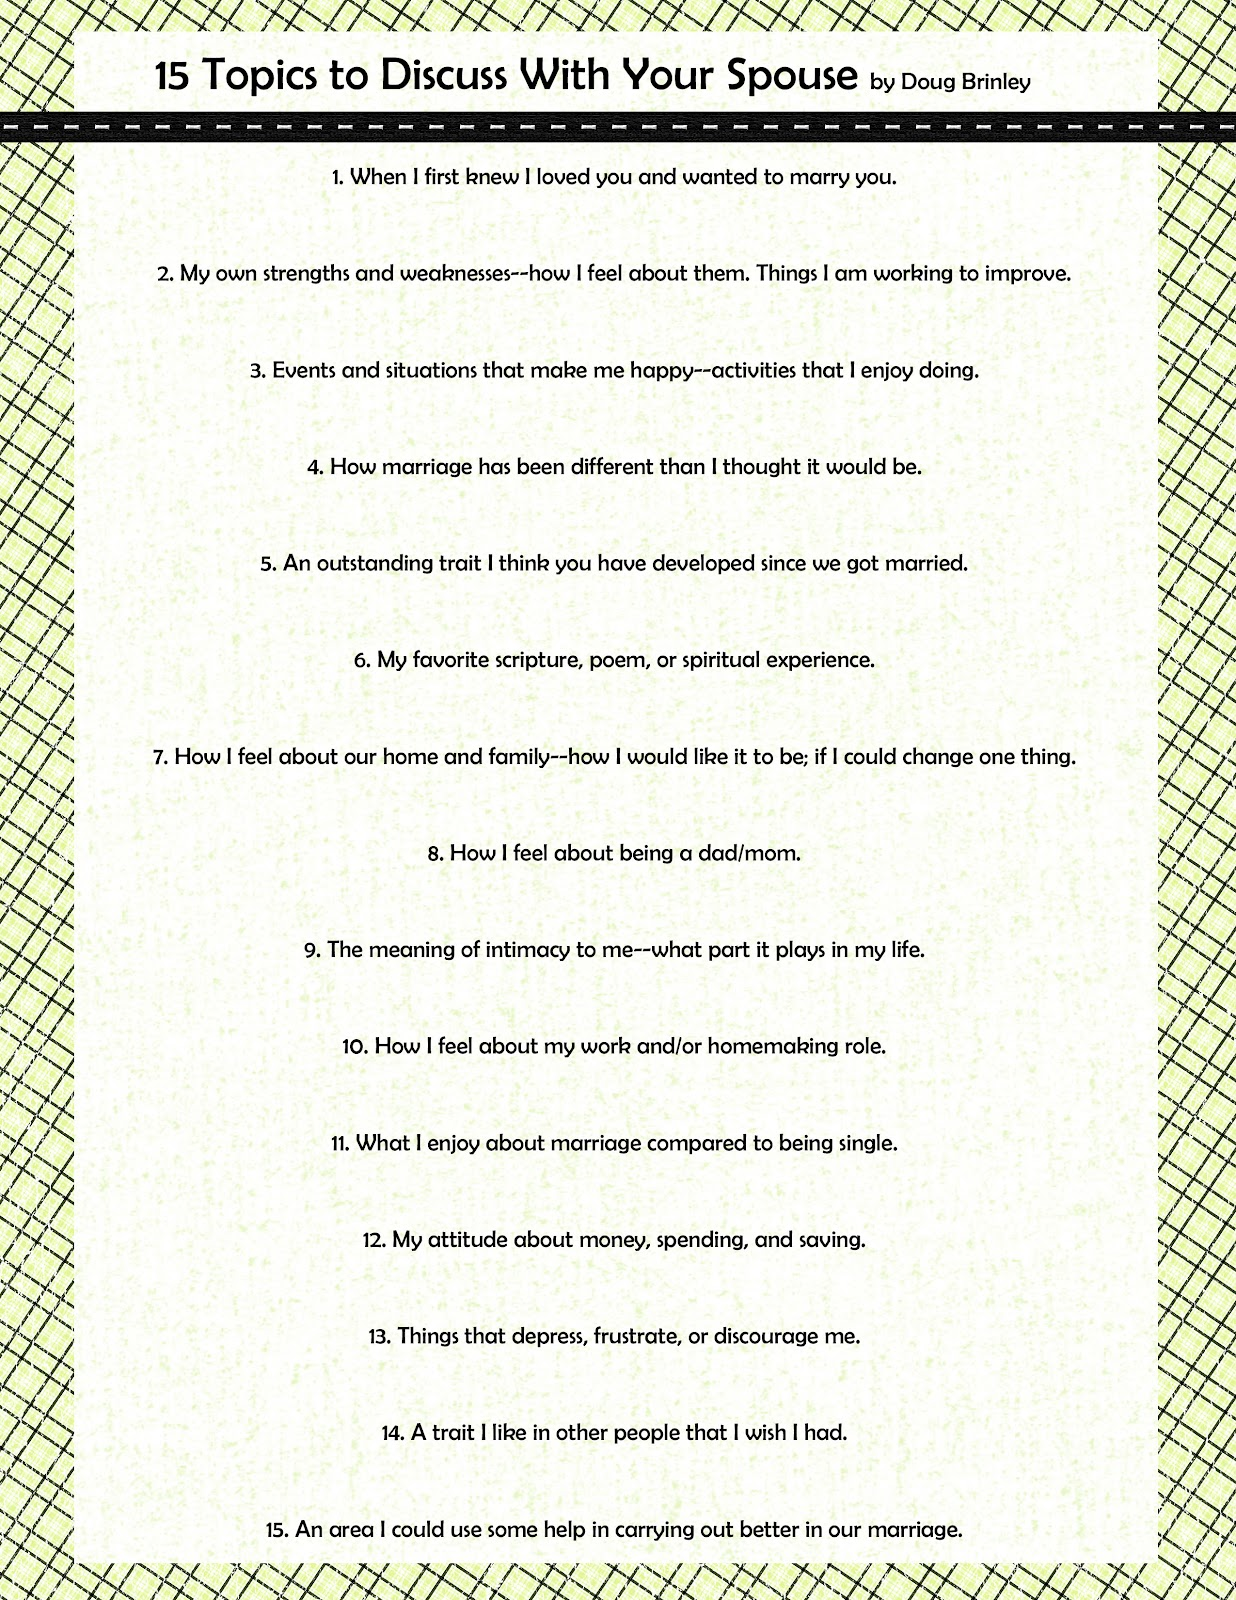 15 topics to discuss with your spouse